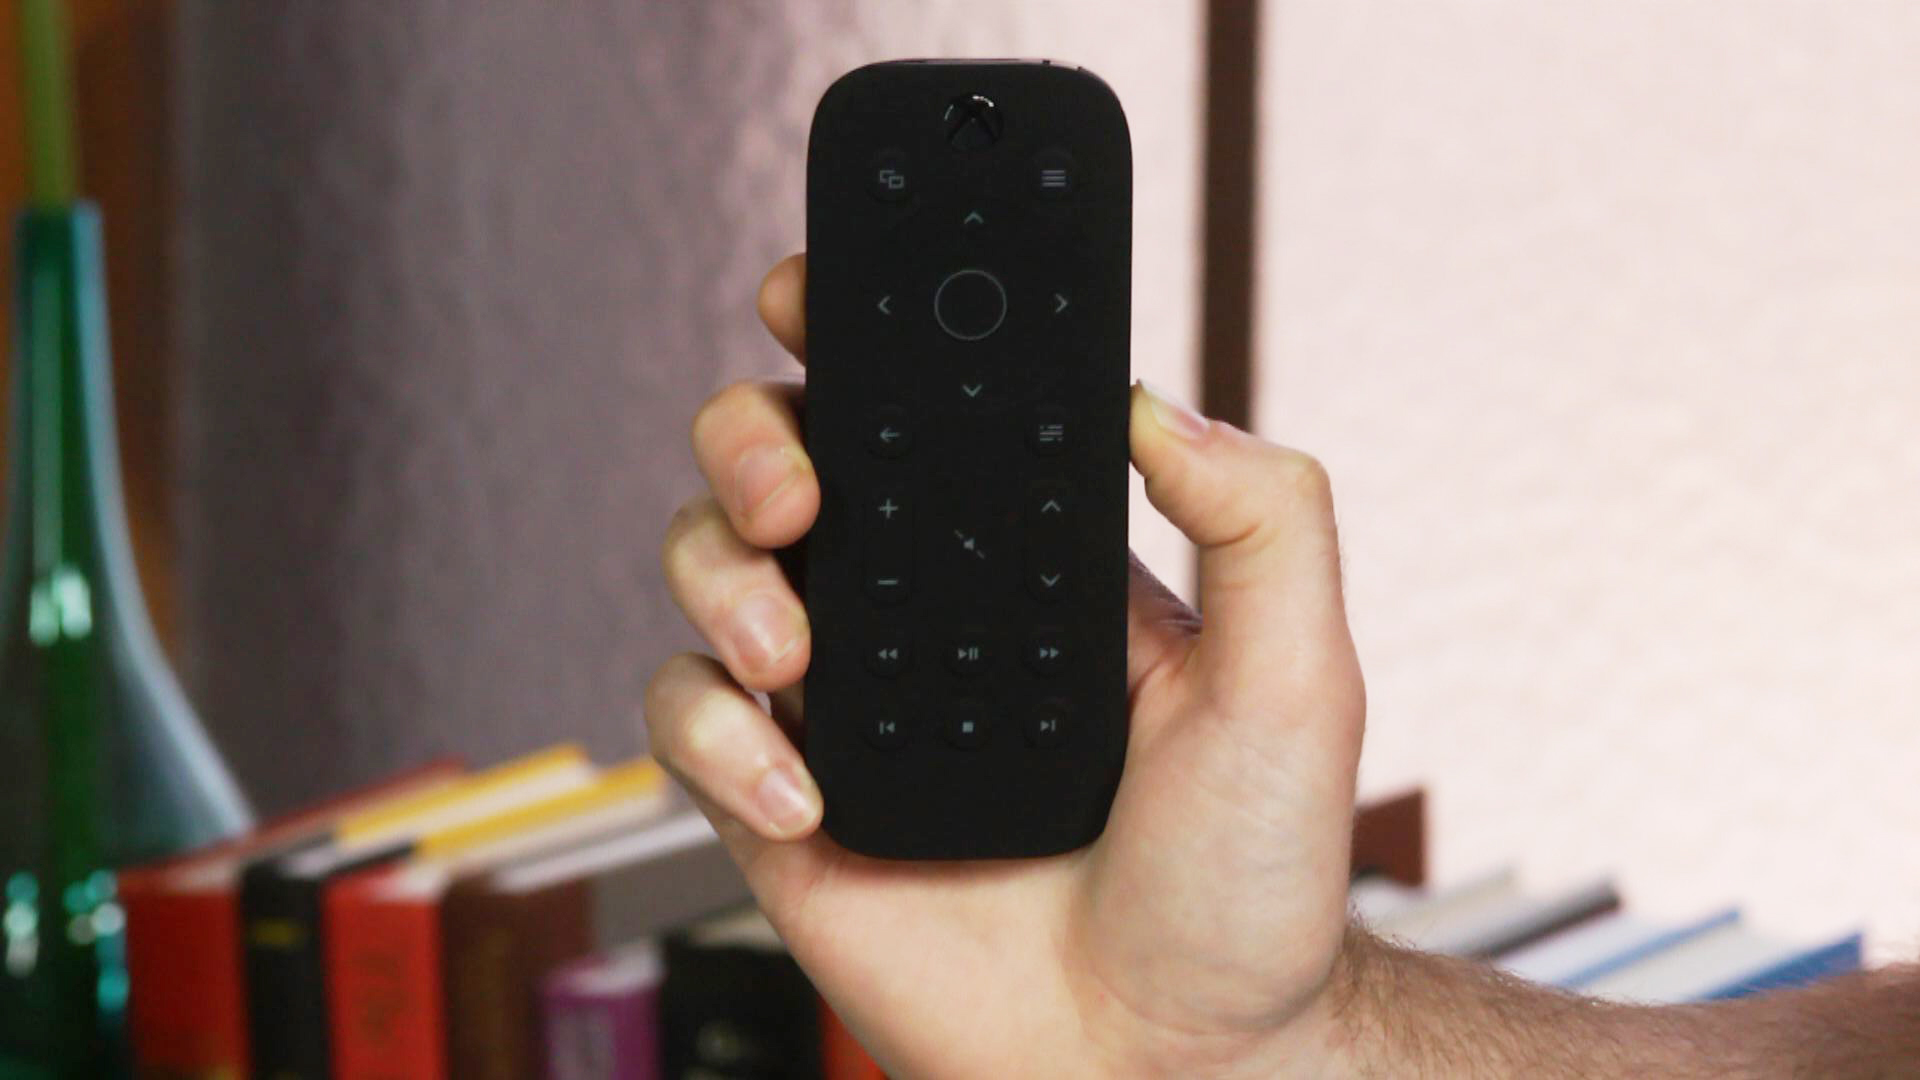 Video: Xbox One Media Remote: A must-have clicker to simplify the Xbox One